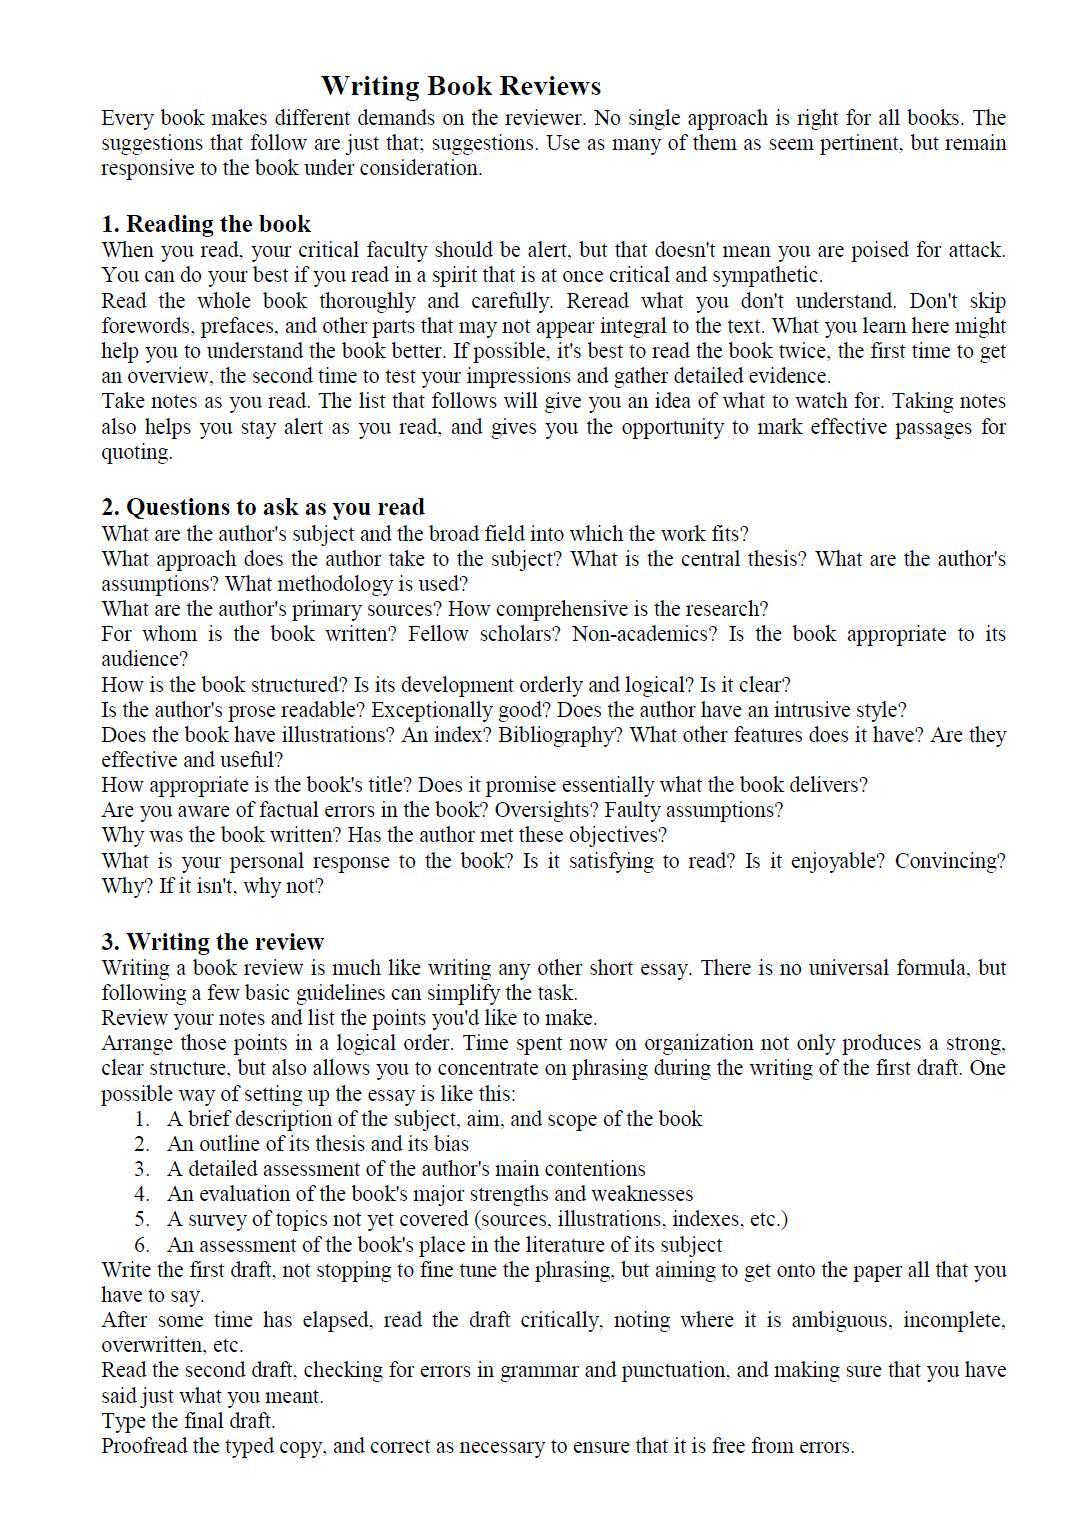 011 Grab My Essay Review Example Writing Reviews How Write Book College Application For Free Common App Can Someone Peer And Correct It Fantastic Full